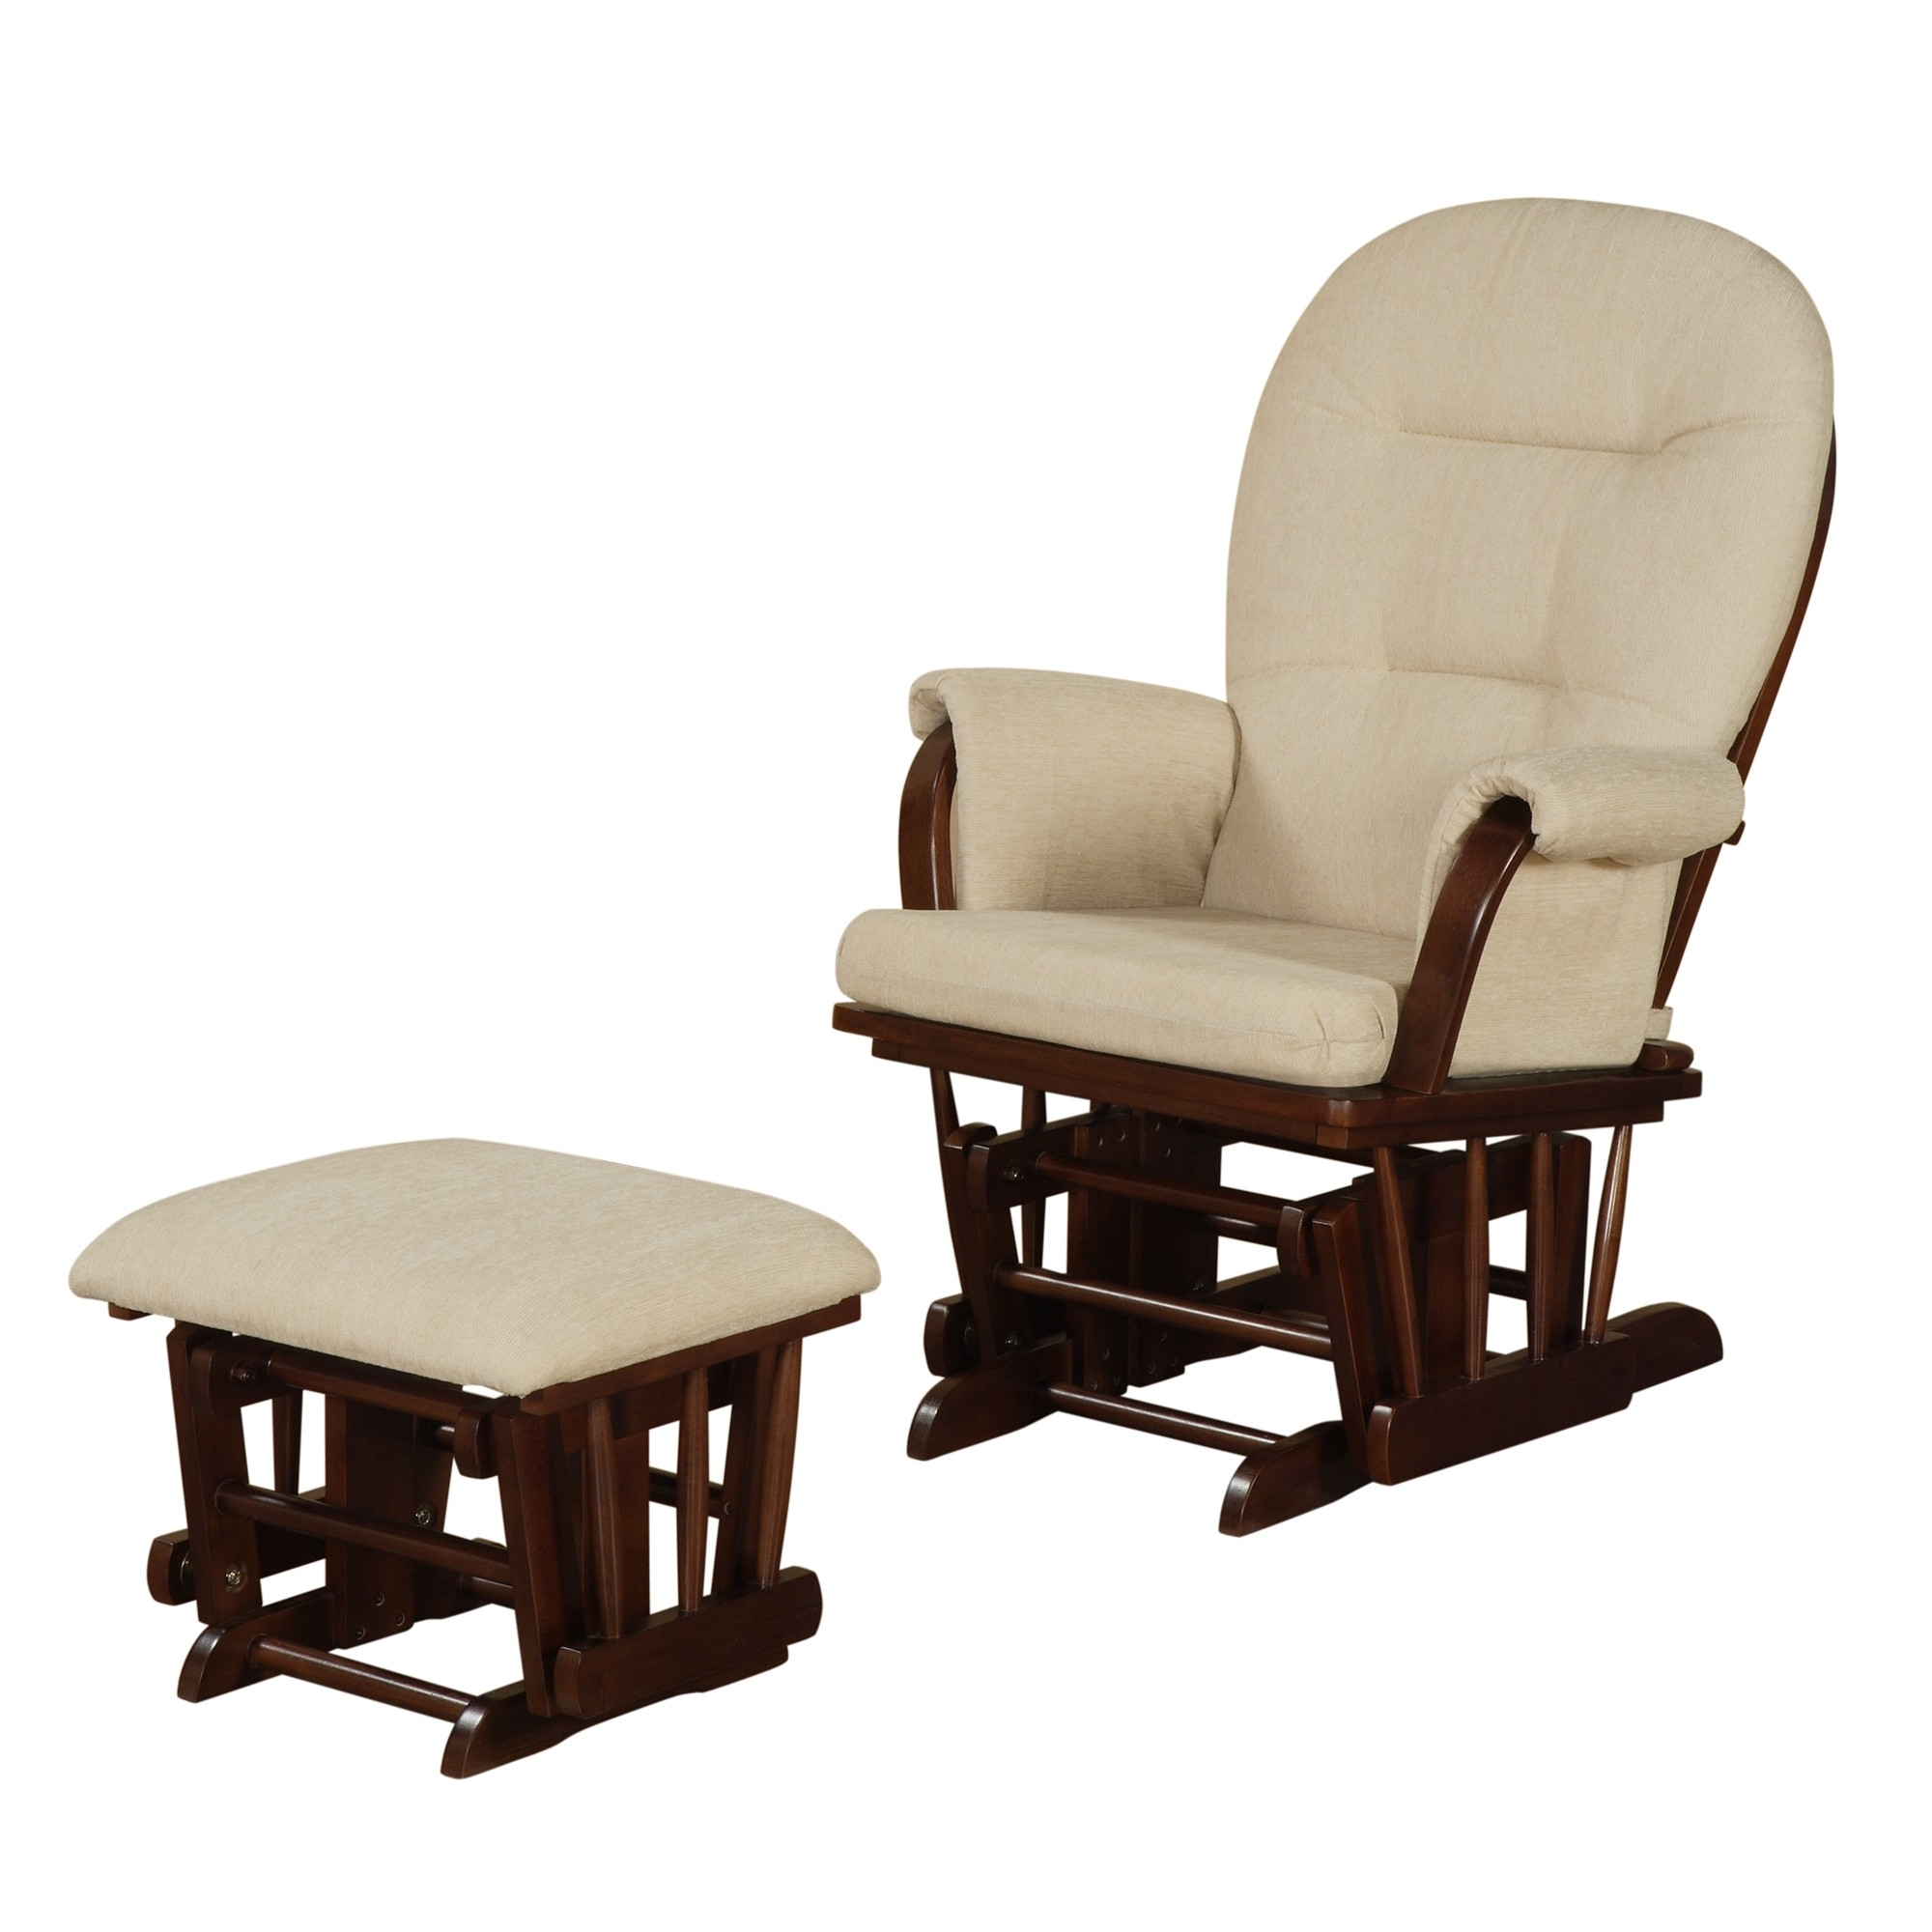 Best And Newest Rocking Chair Glider Nursery Gus Modern Sparrow Glider Throughout Rocking Chairs With Ottoman (View 4 of 15)